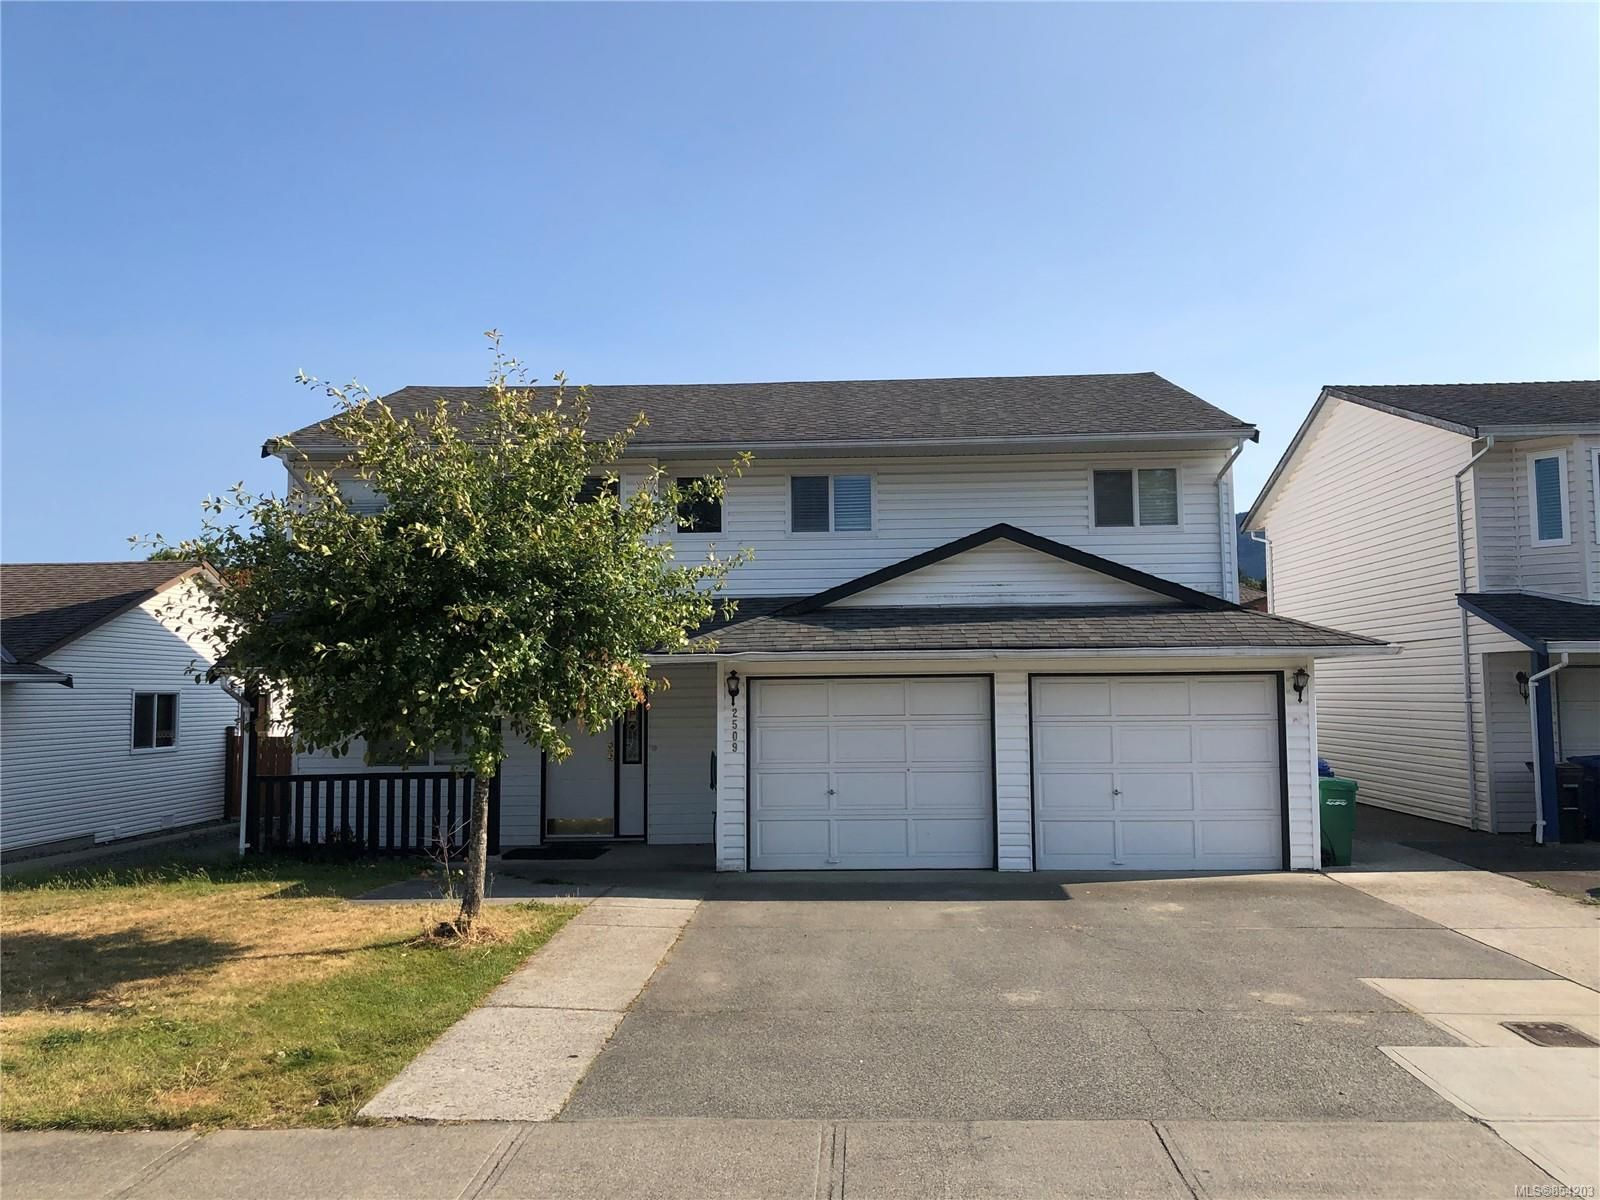 Main Photo: 2509 Nadely Cres in : Na Diver Lake House for sale (Nanaimo)  : MLS®# 854203